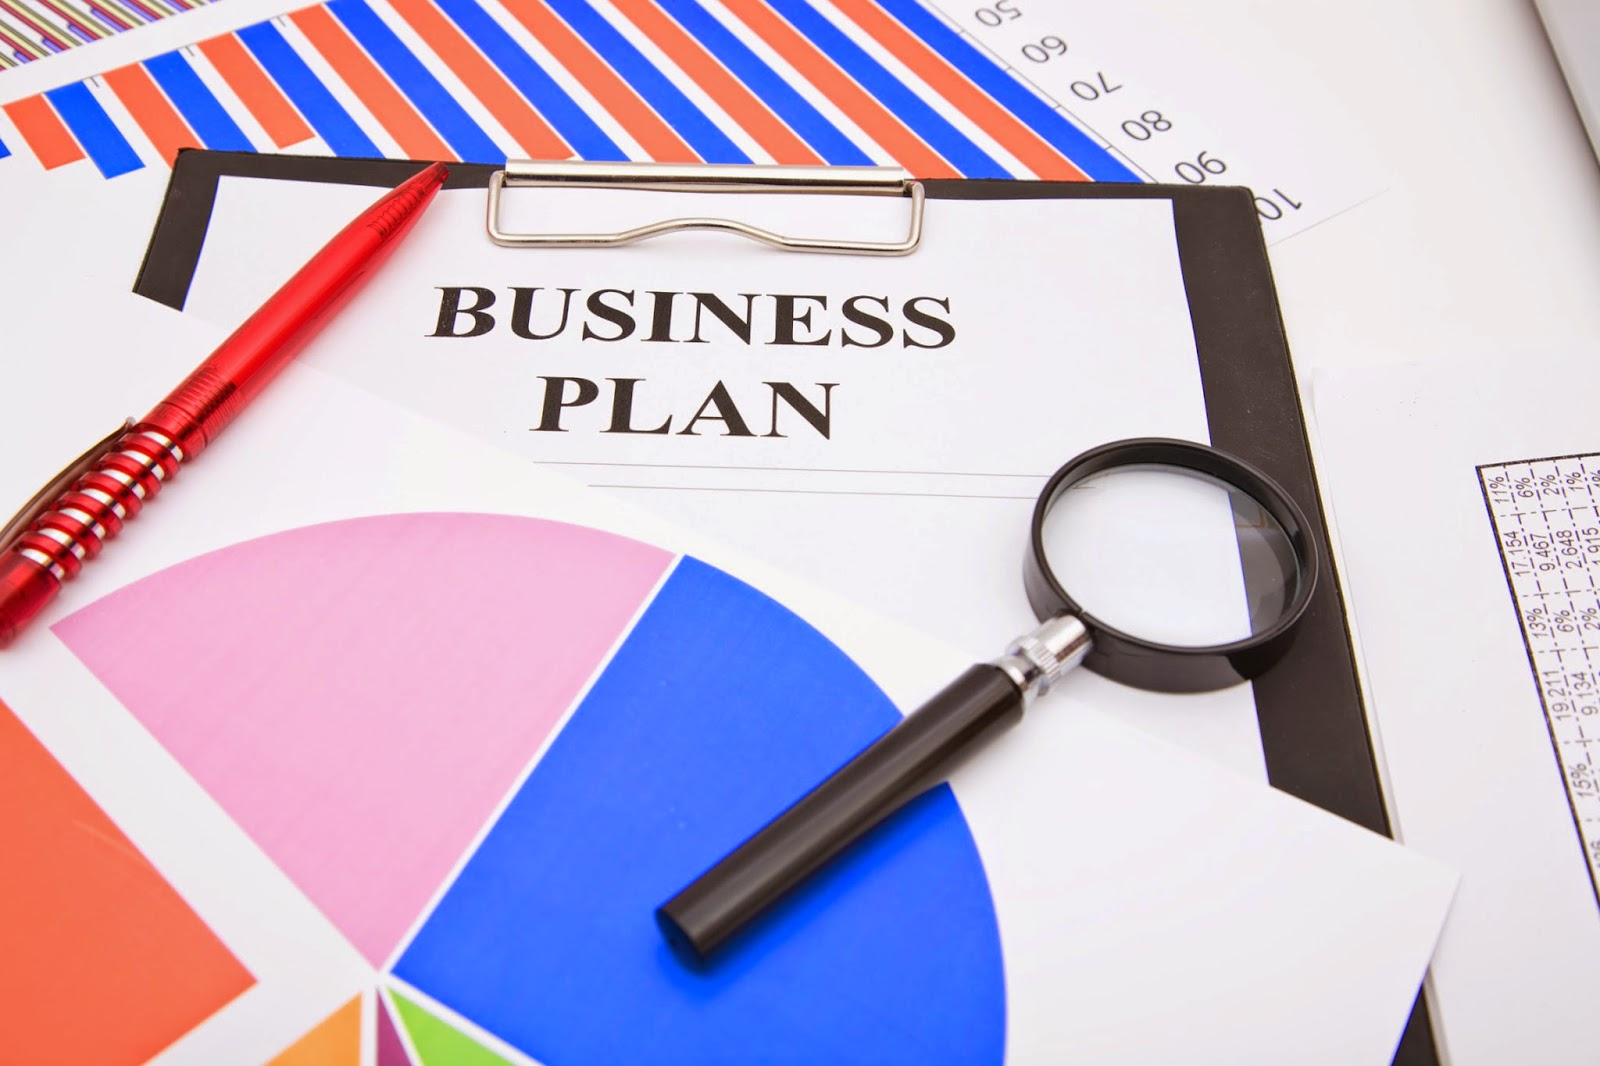 Every entrepreneur needs a business plan, just don't overcomplicate it.